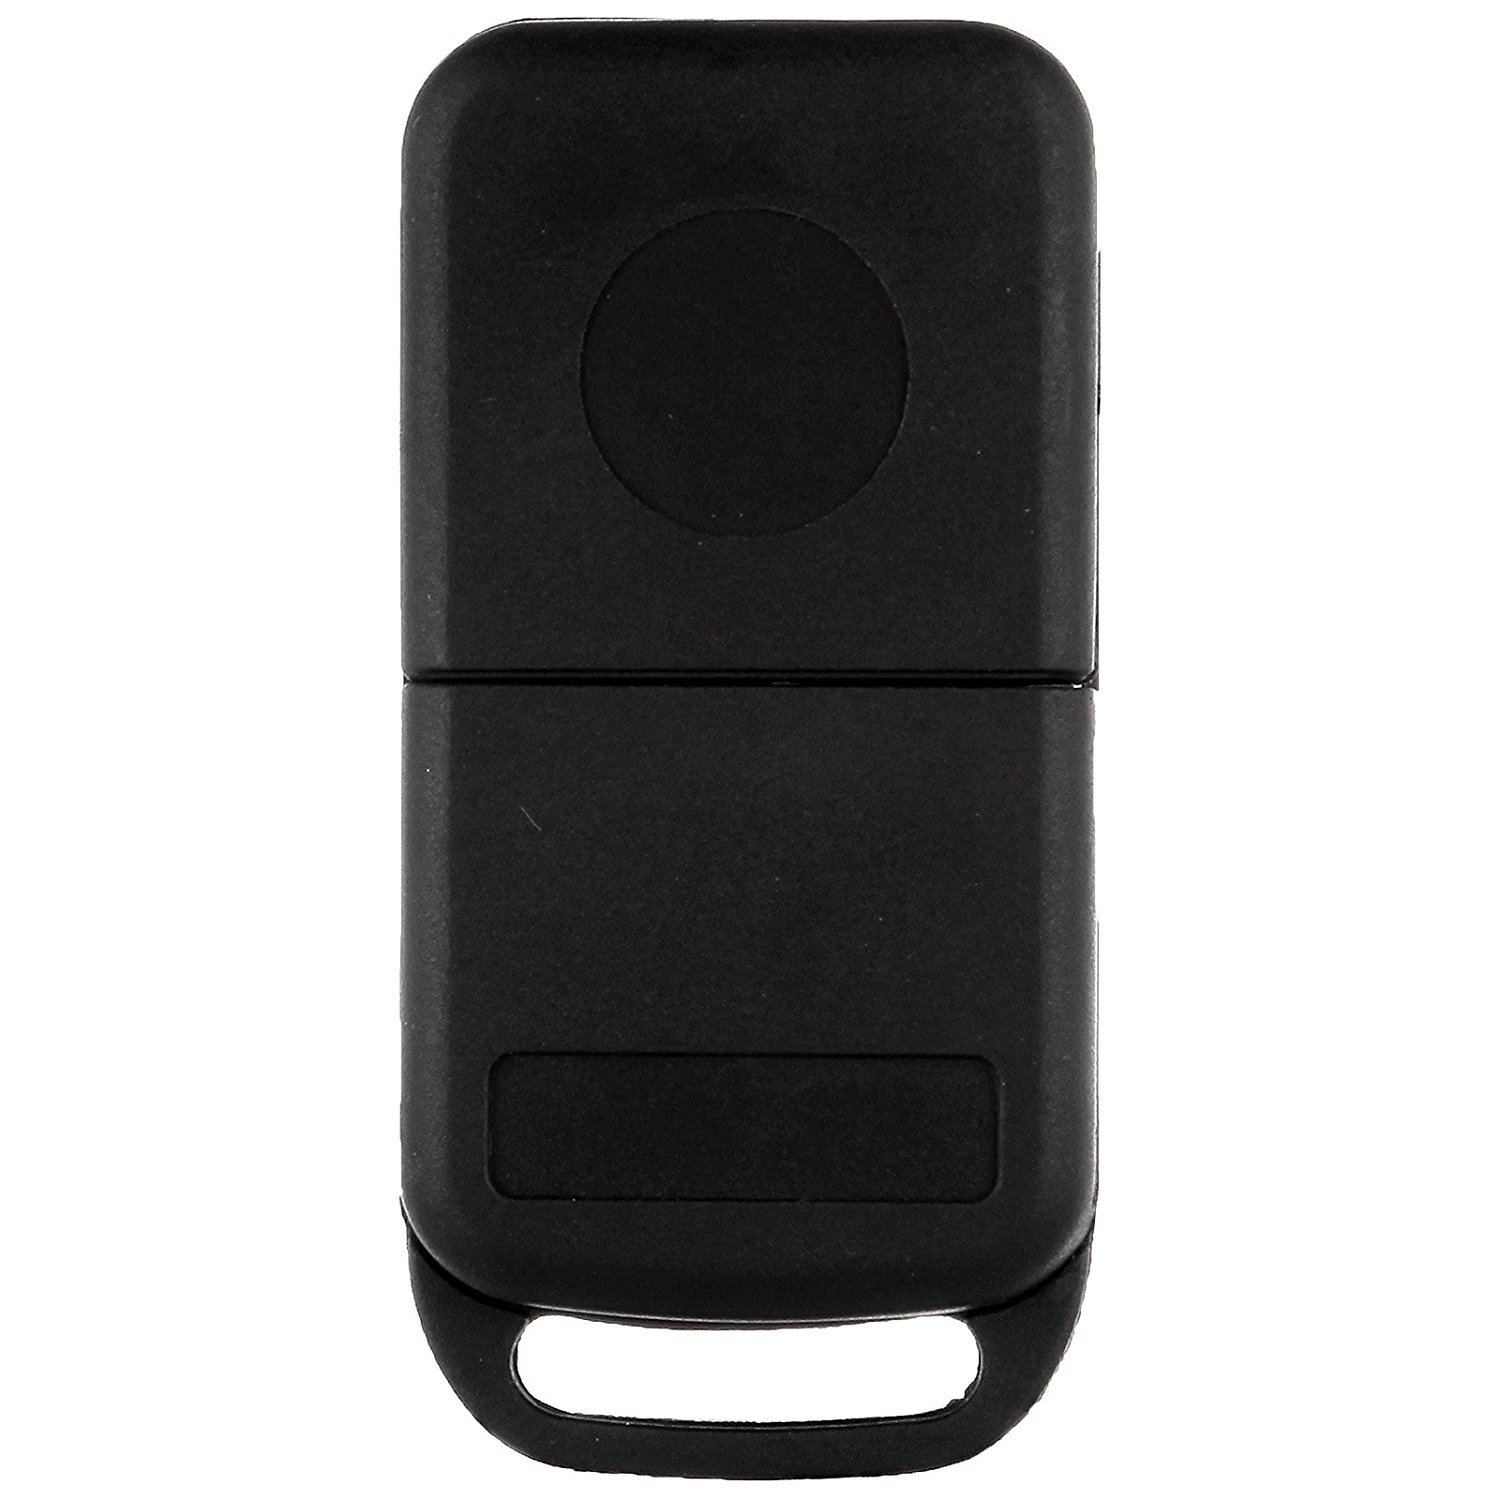 ECCPP Uncut 4 Buttons Keyless Entry Remote Key Fob Shell Case Replacement fit for 94-2005 Mercedes-Benz AMG S500 SL500 SLK230 SLK32 AMG SL600 ML430 NCZMB1K